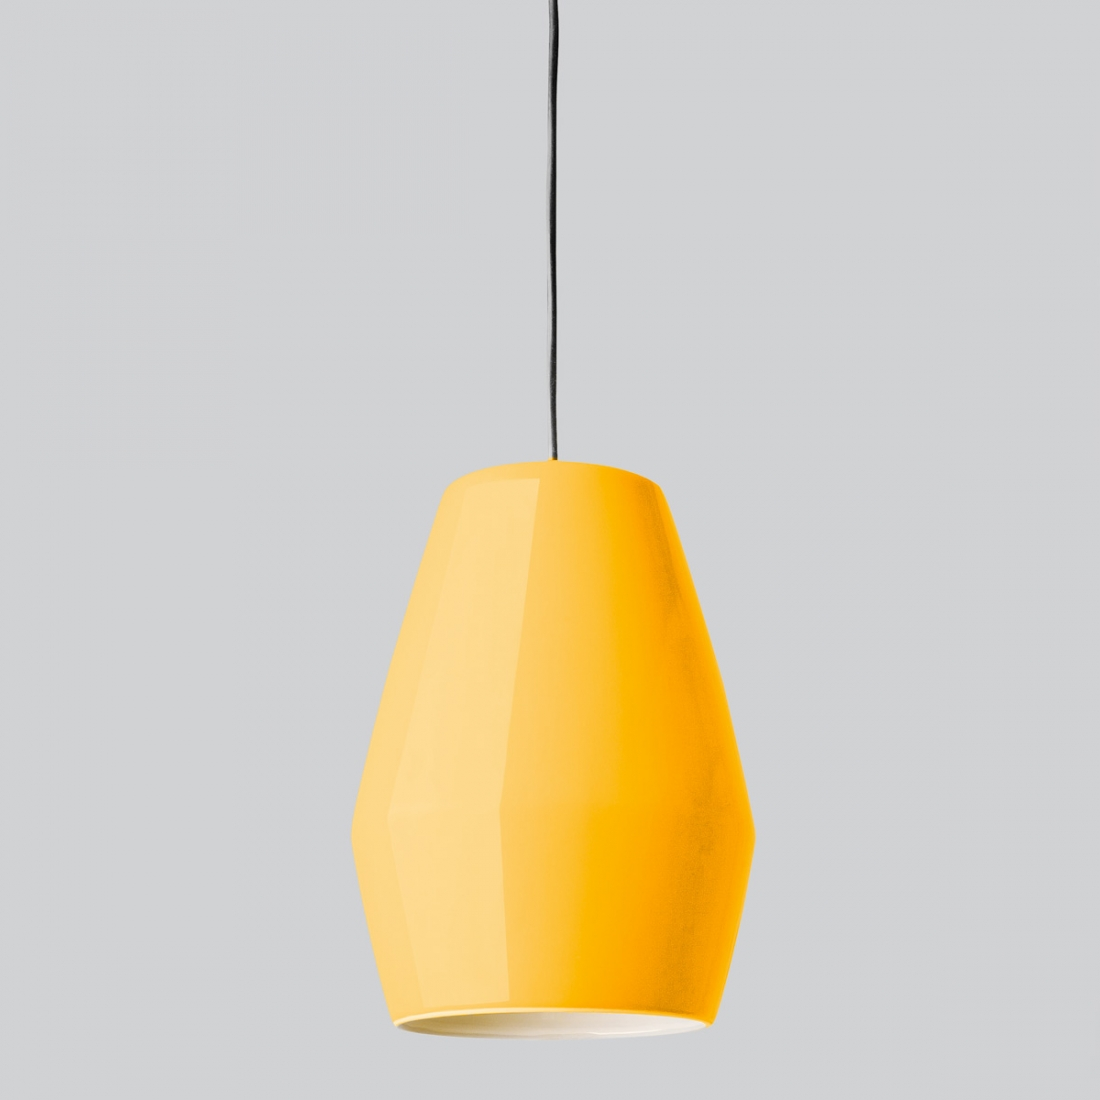 Suspension lumineuse design bell northern lighting for Suspension lumineuse